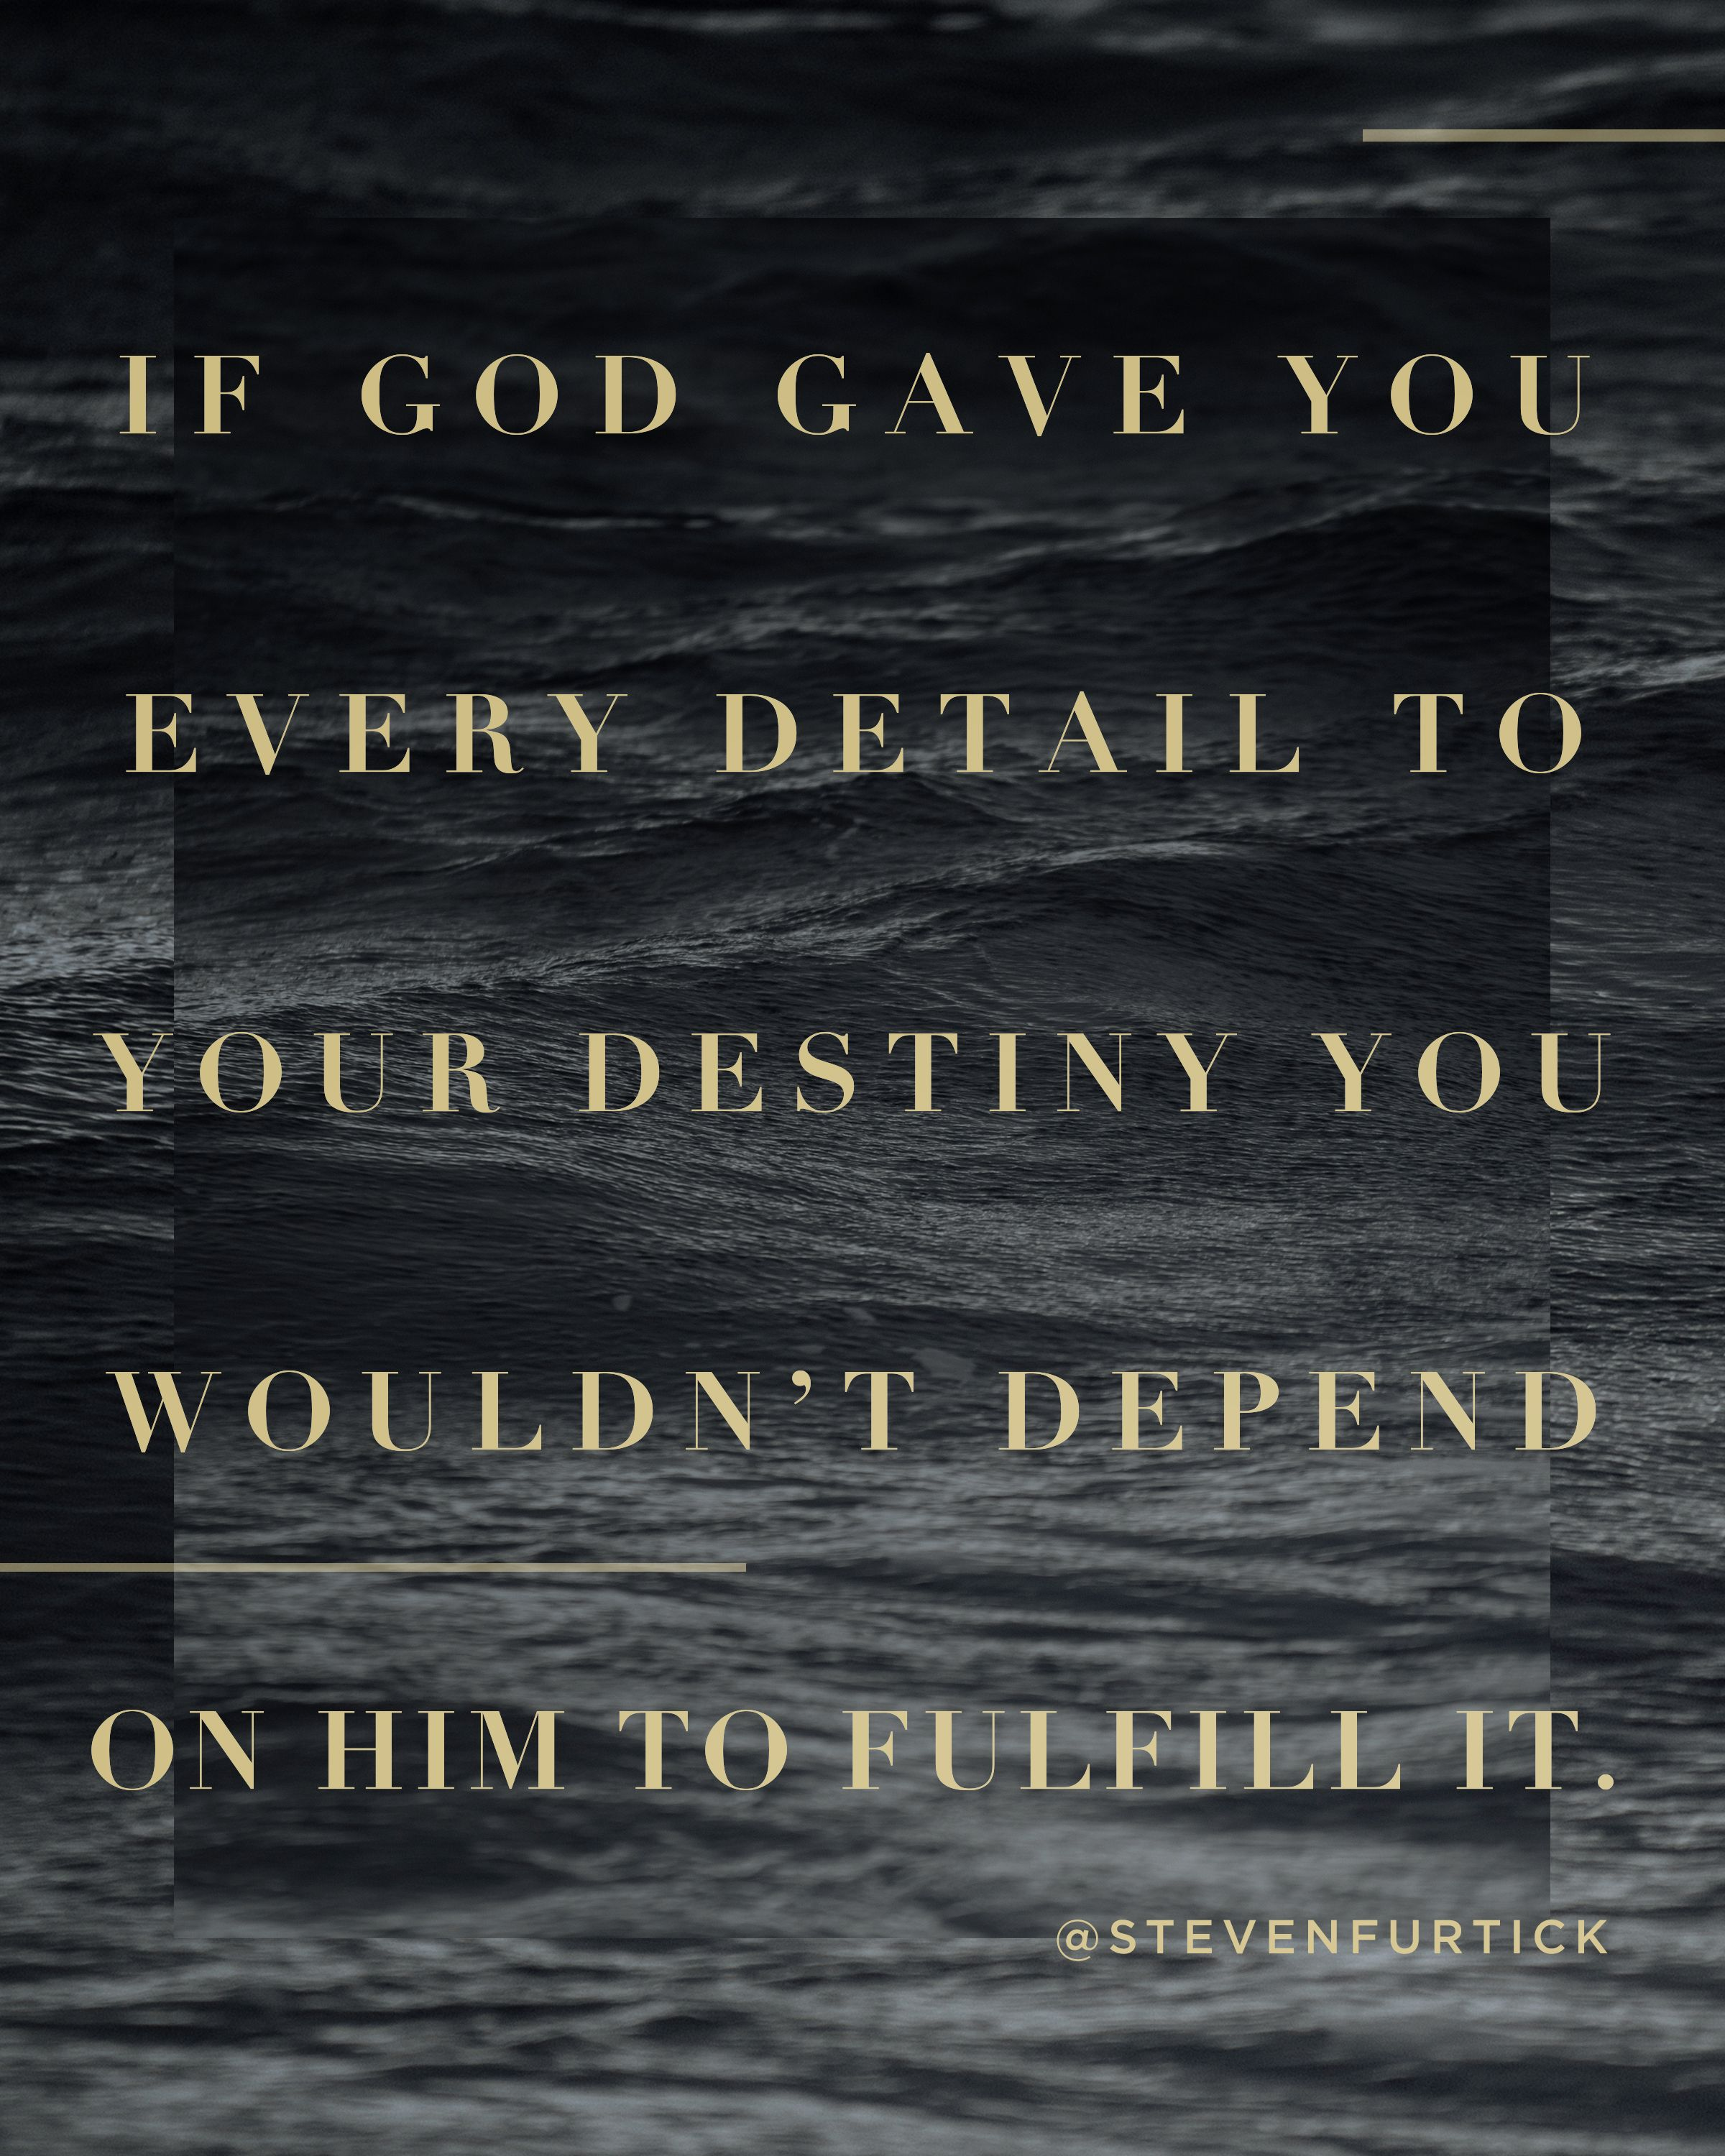 If God gave you every detail to your destiny, you wouldn't depend on